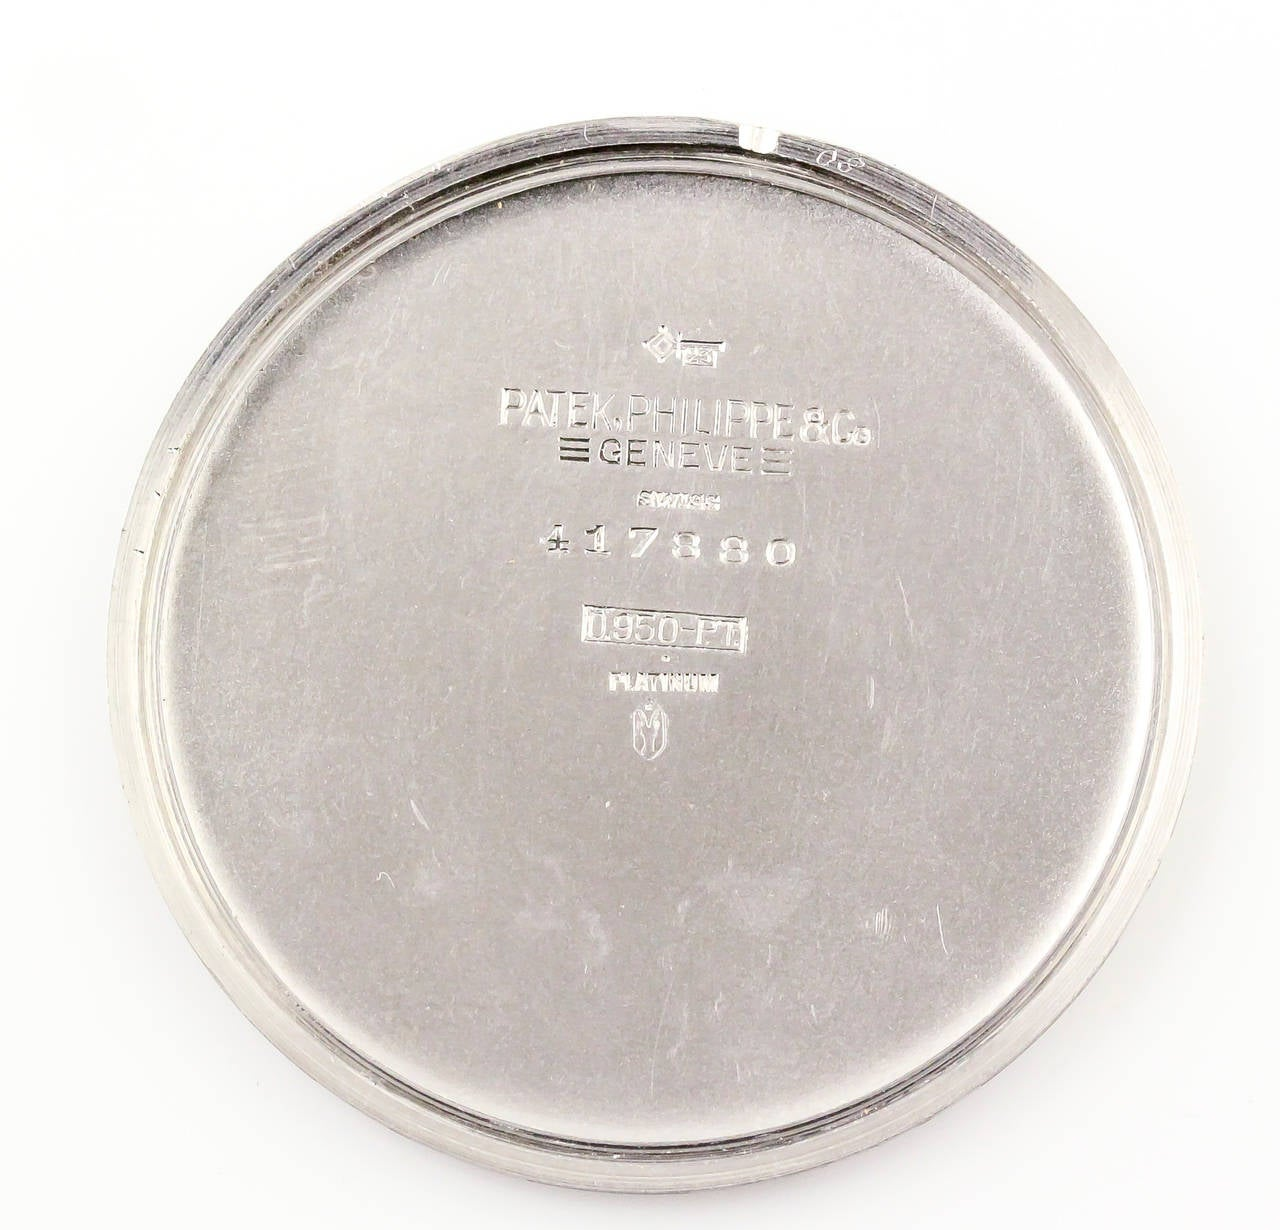 Patek Philippe Platinum Diamond Manual Pocket Watch Ref 600 In Excellent Condition For Sale In New York, NY